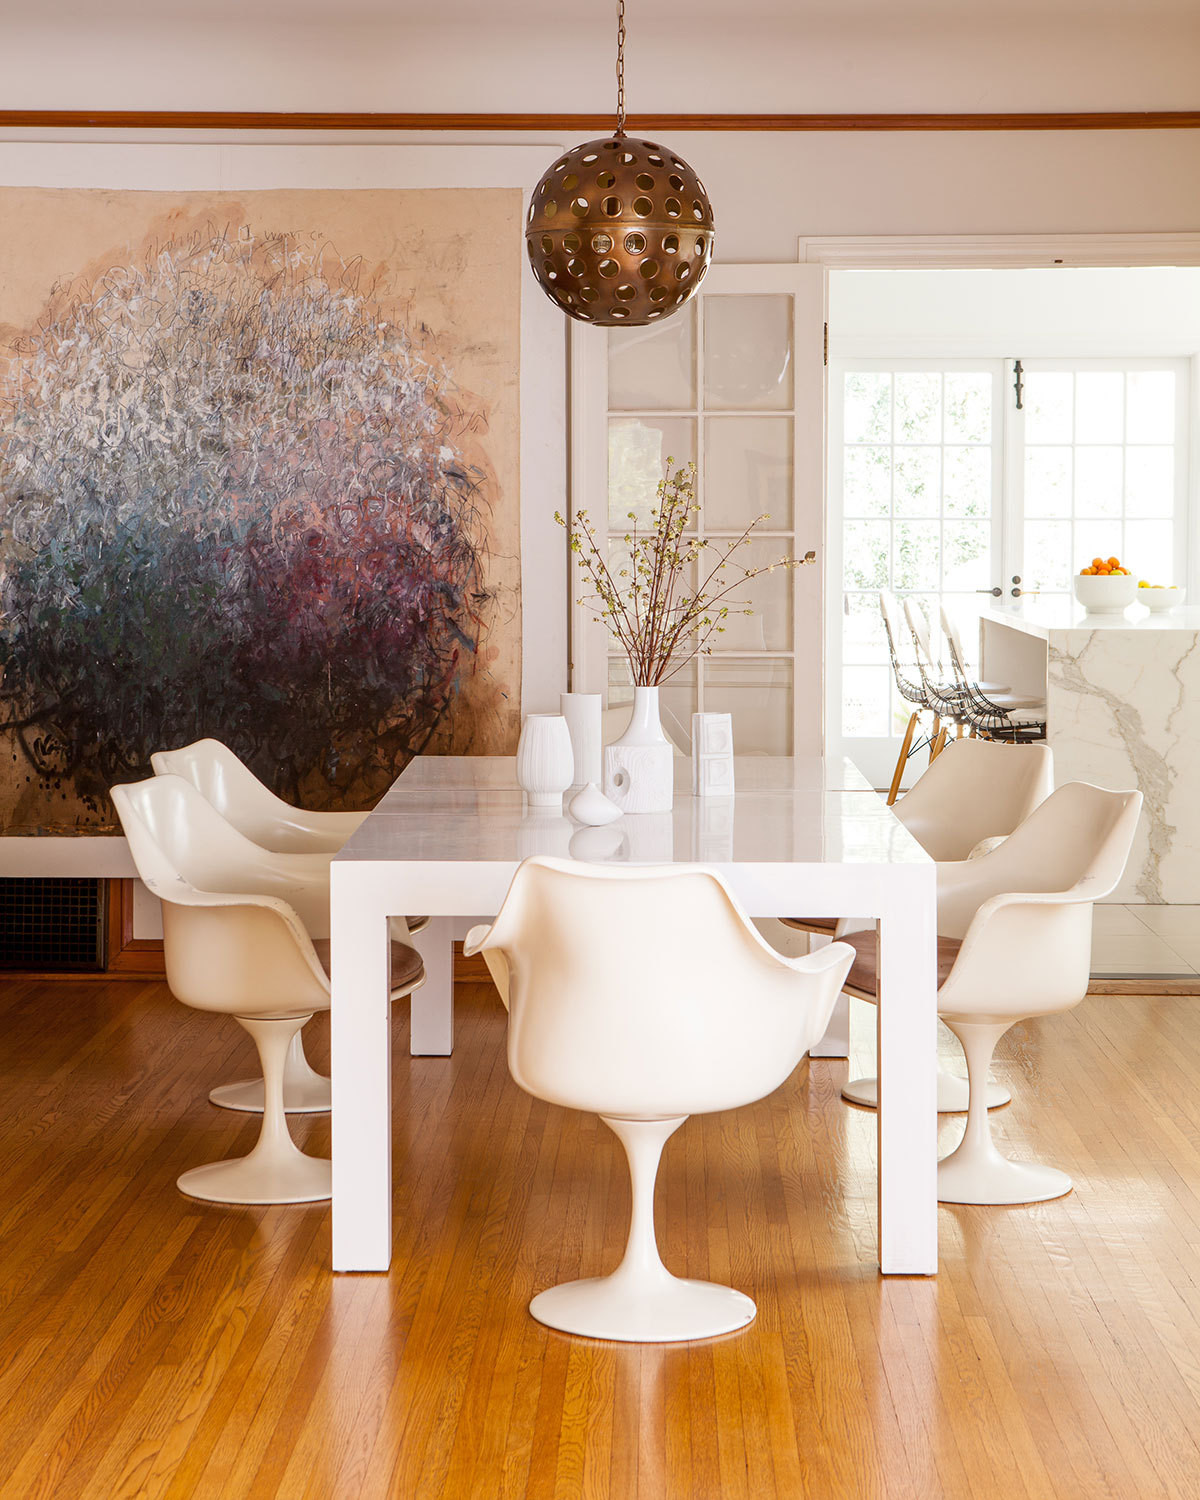 The white dining table is a midcentury Milo Baughman purchased on Craigslist. The Tulip chairs are by Eero Saarinen.